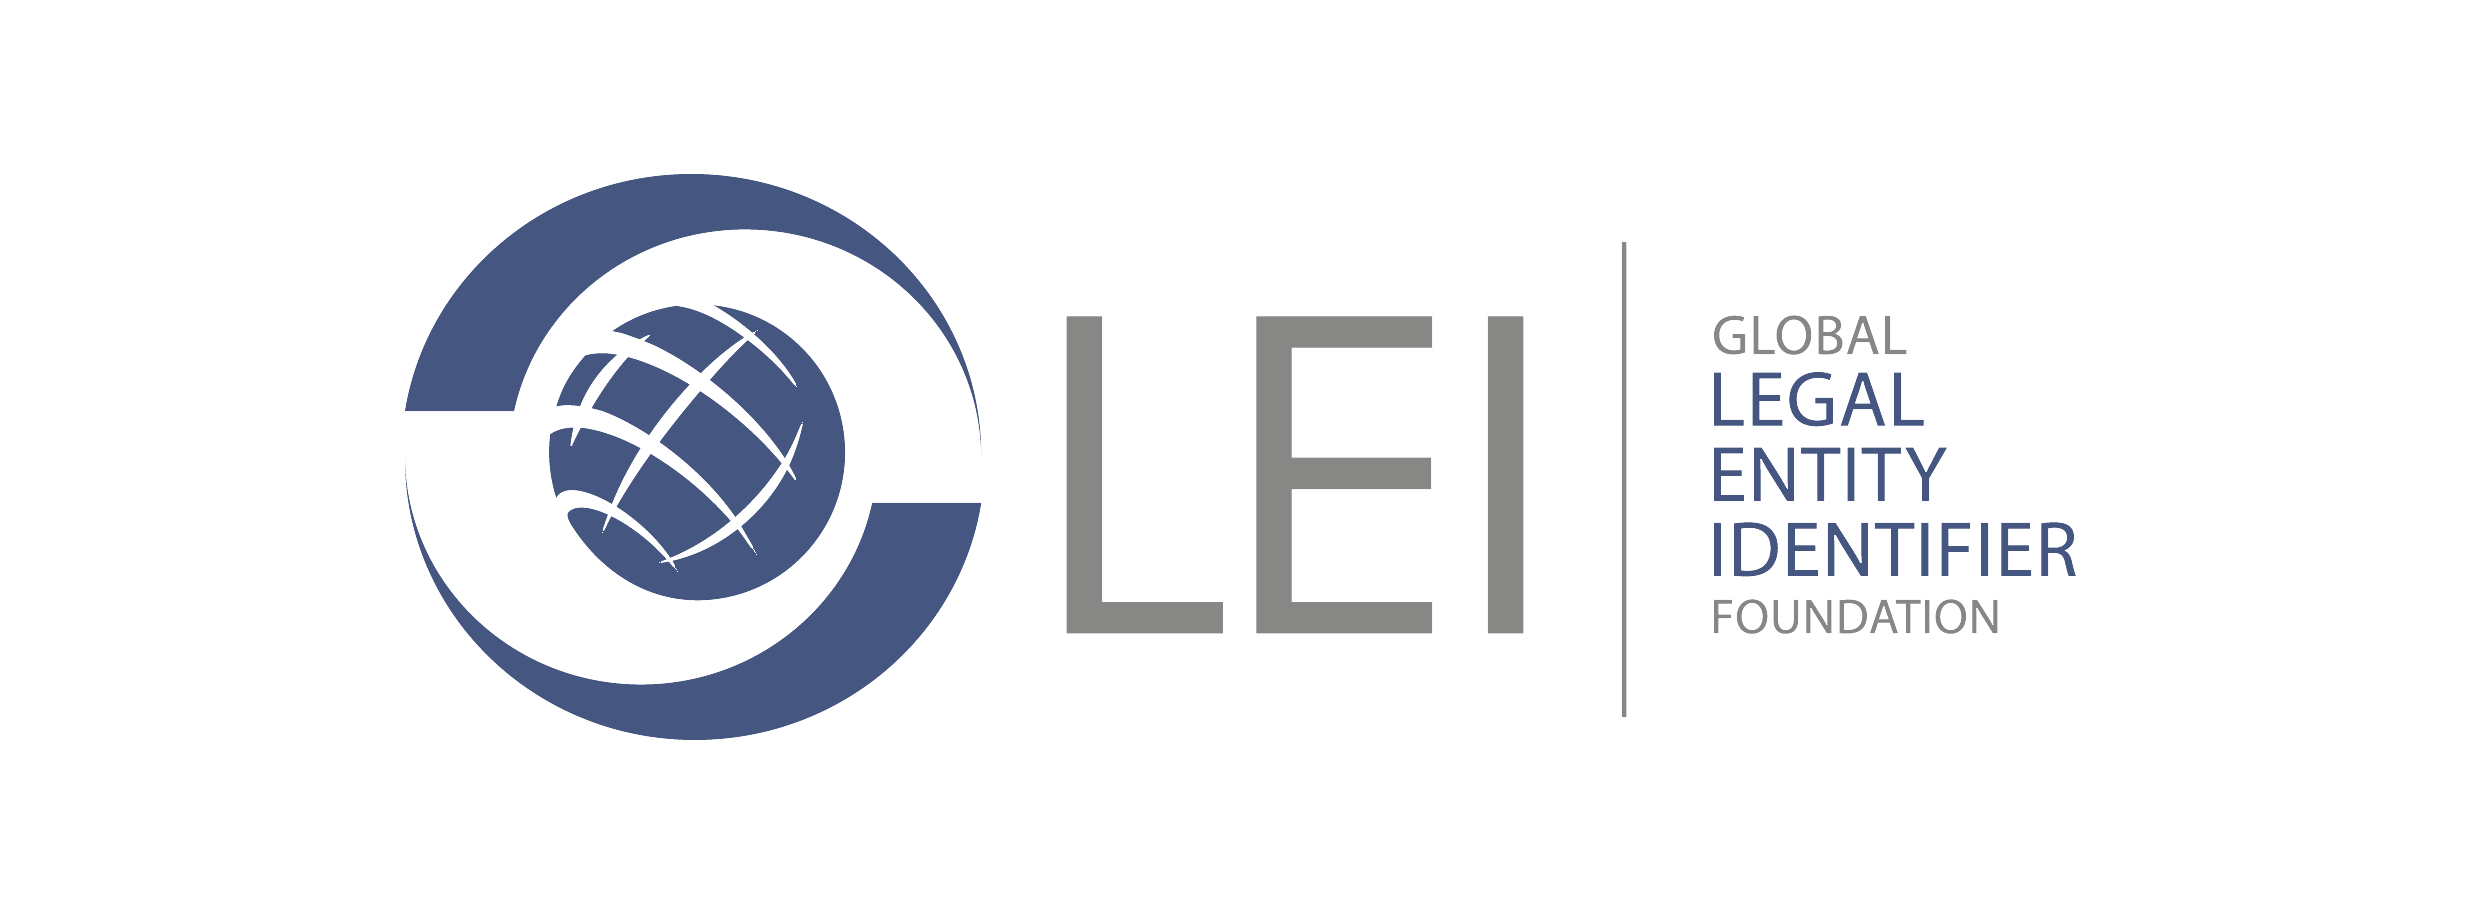 GLEIF Confirms J.P. Morgan as First Validation Agent in the Global LEI System